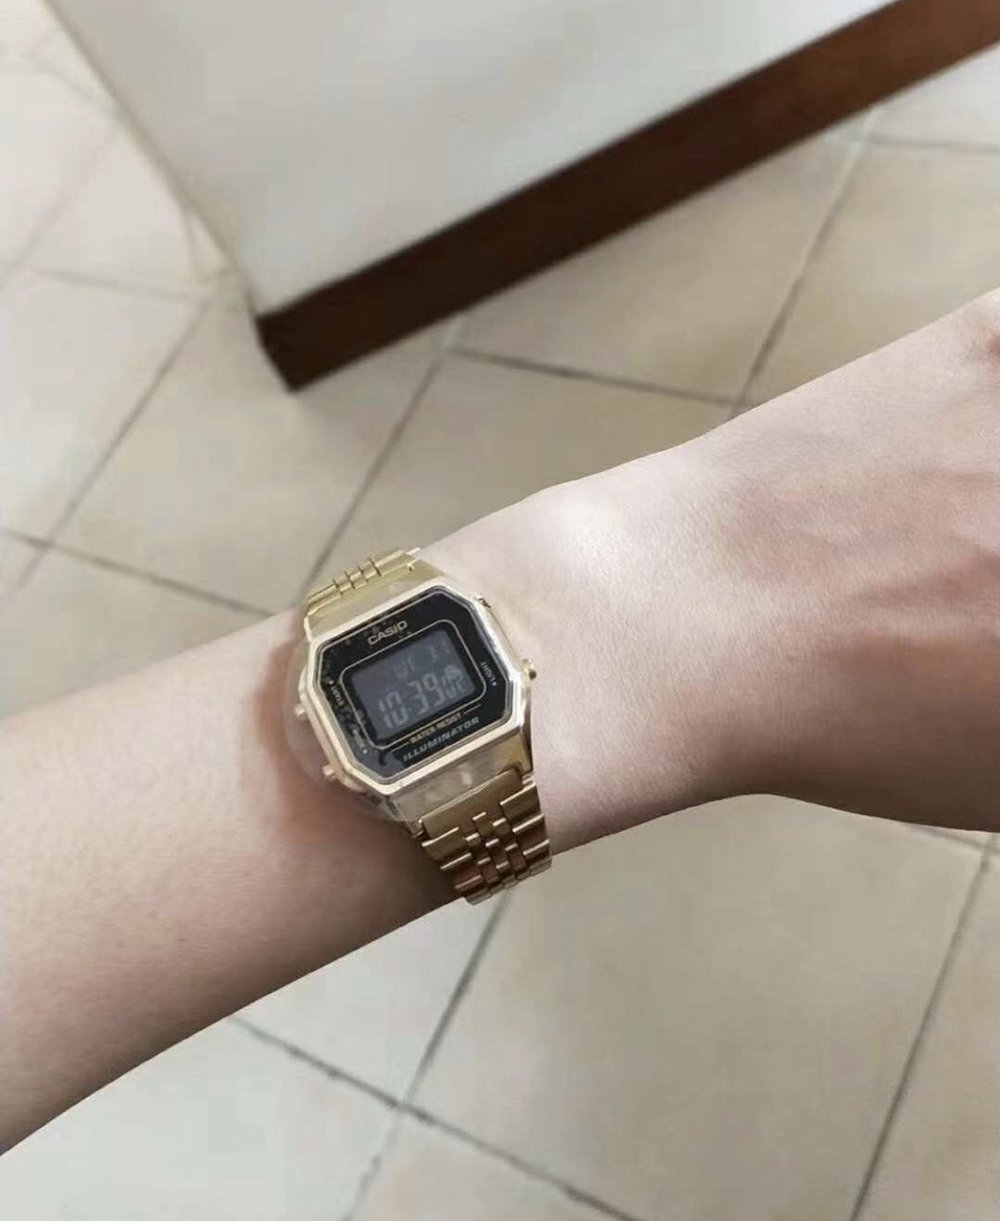 Senior Angela W. bought a knockoff Casio watch from Taobao.  (image: Evelyn S., Concordia Applied Journalism)